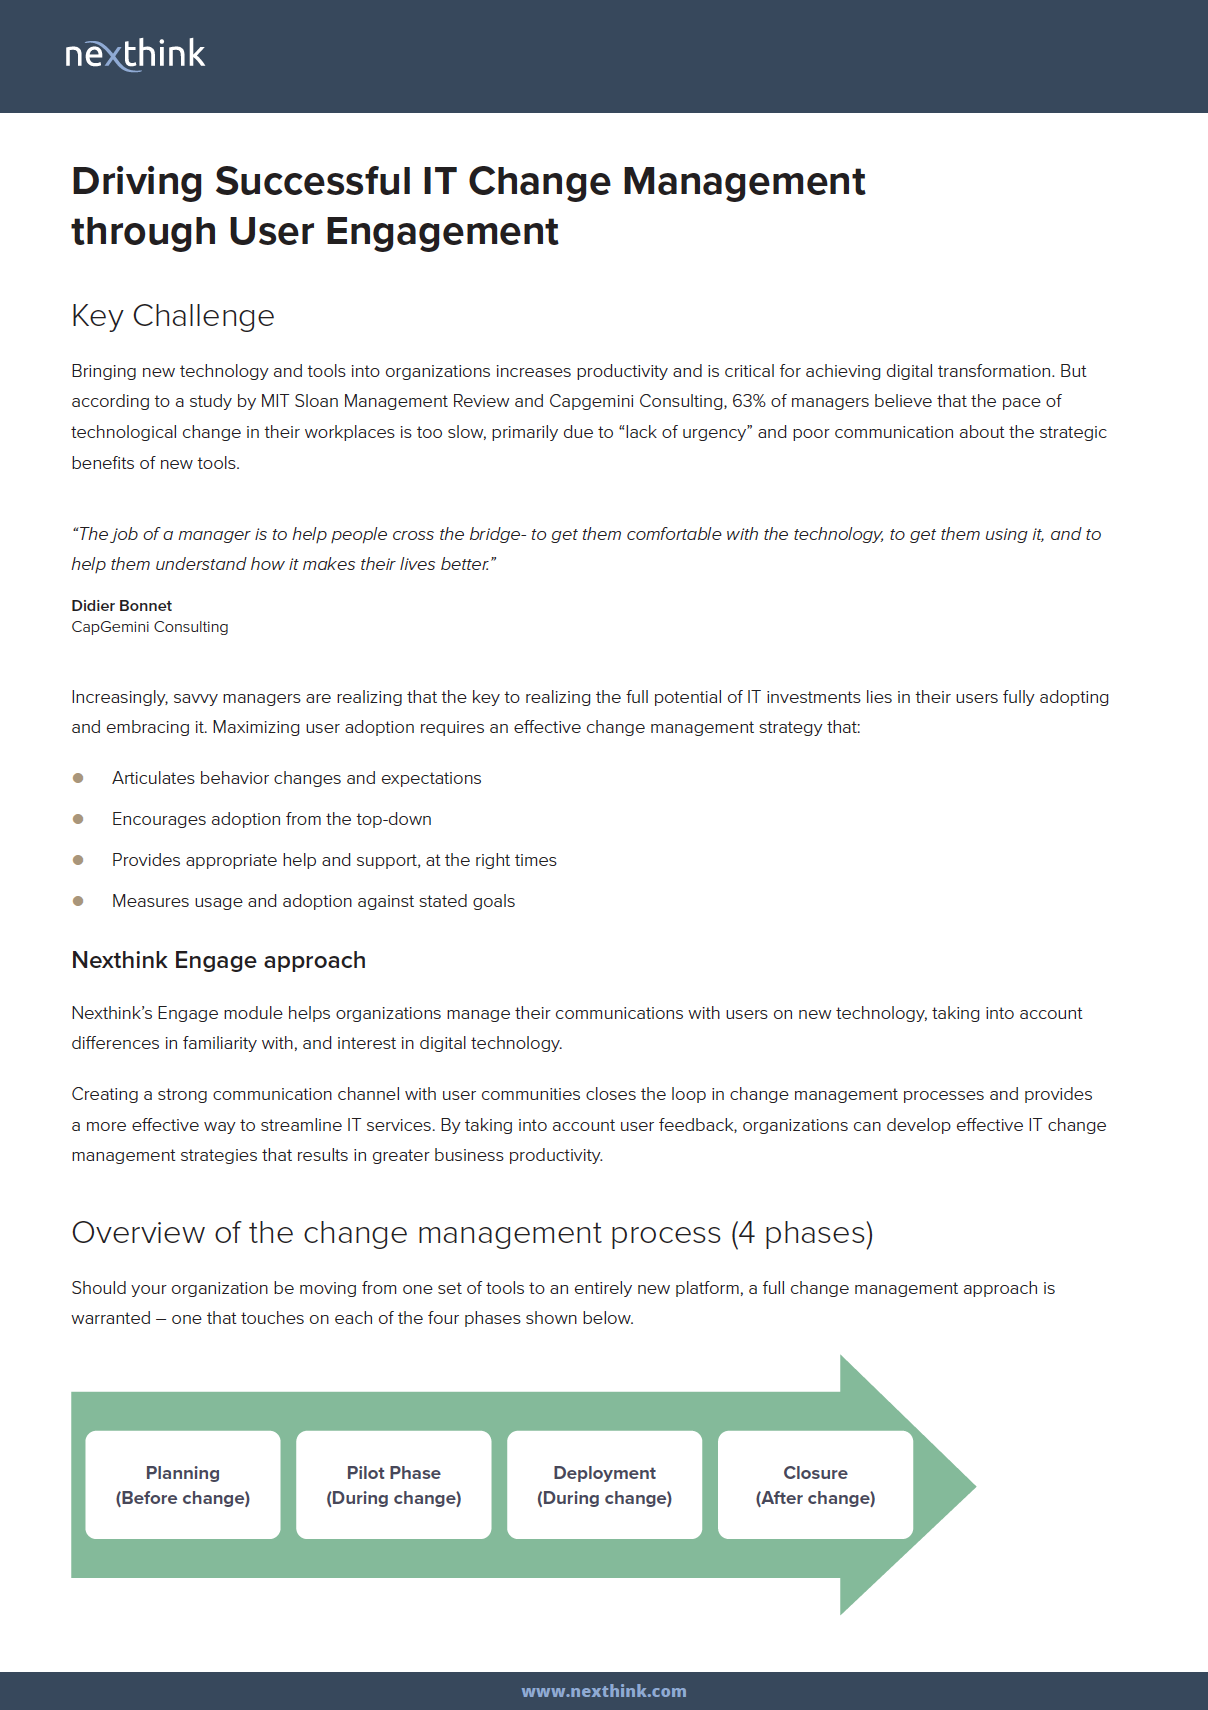 Driving Successful IT Change Management through User Engagement